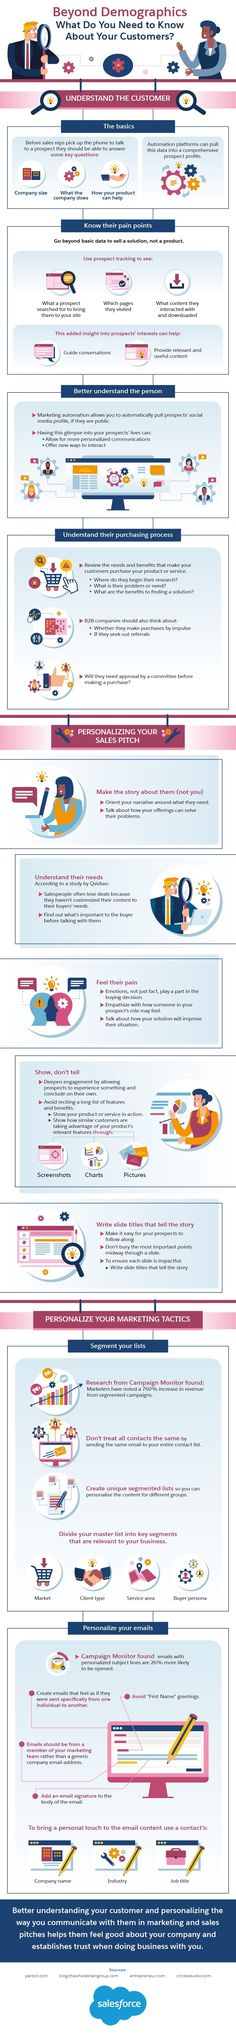 What You Need to Know About Your Customers for #Marketing Success #Infographic